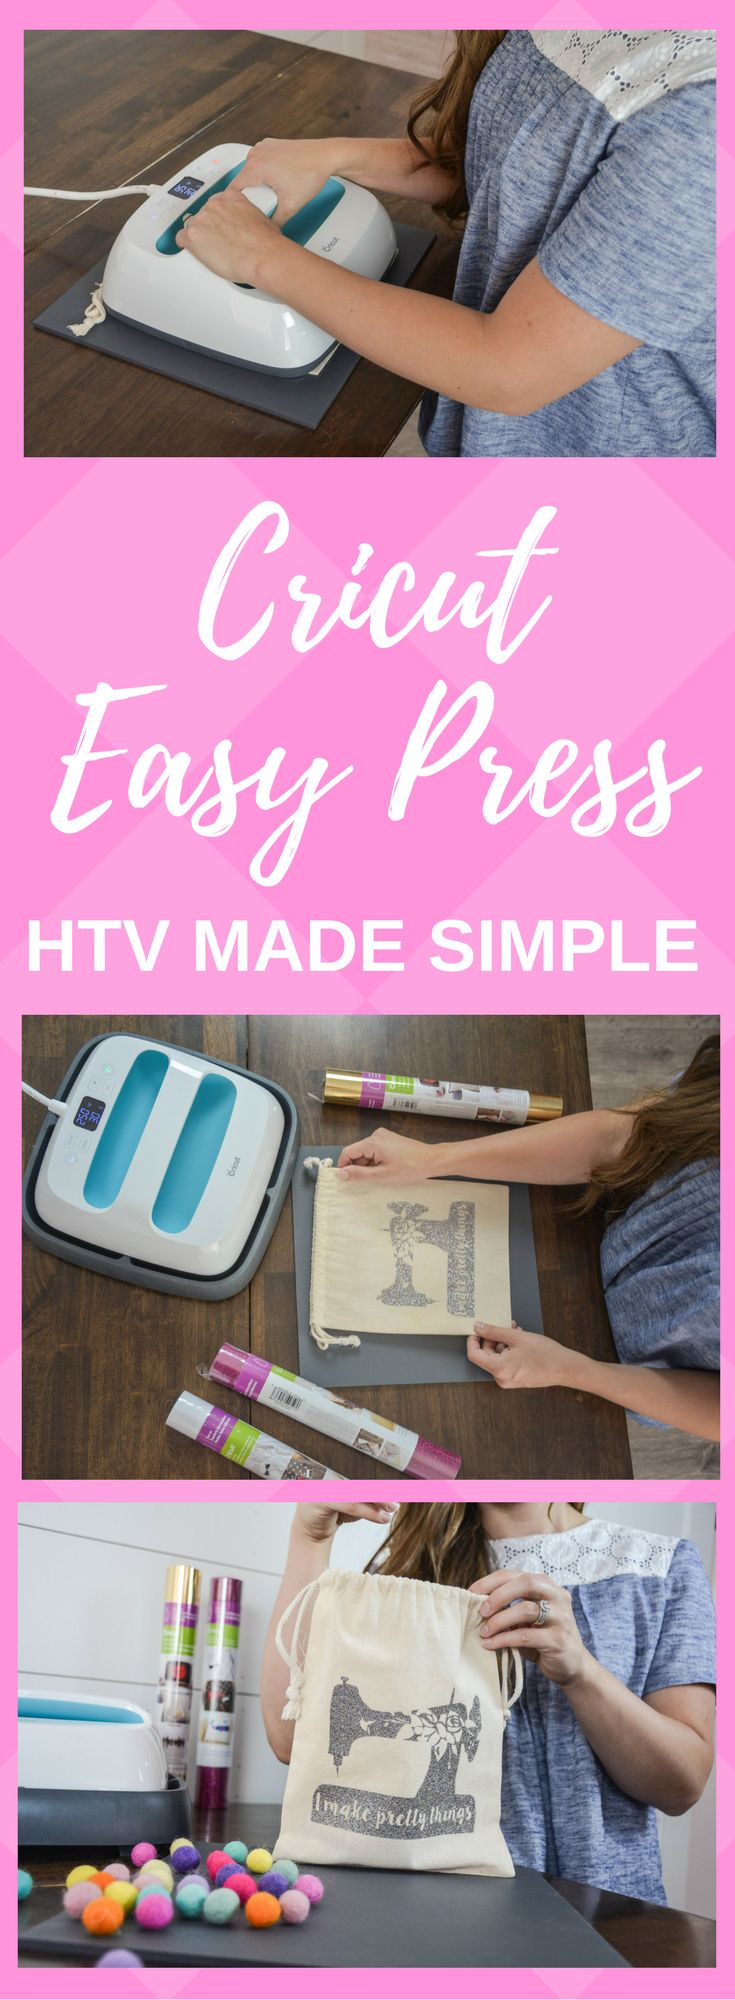 Cricut Easy Press makes HTV so simple with just the press of a button.